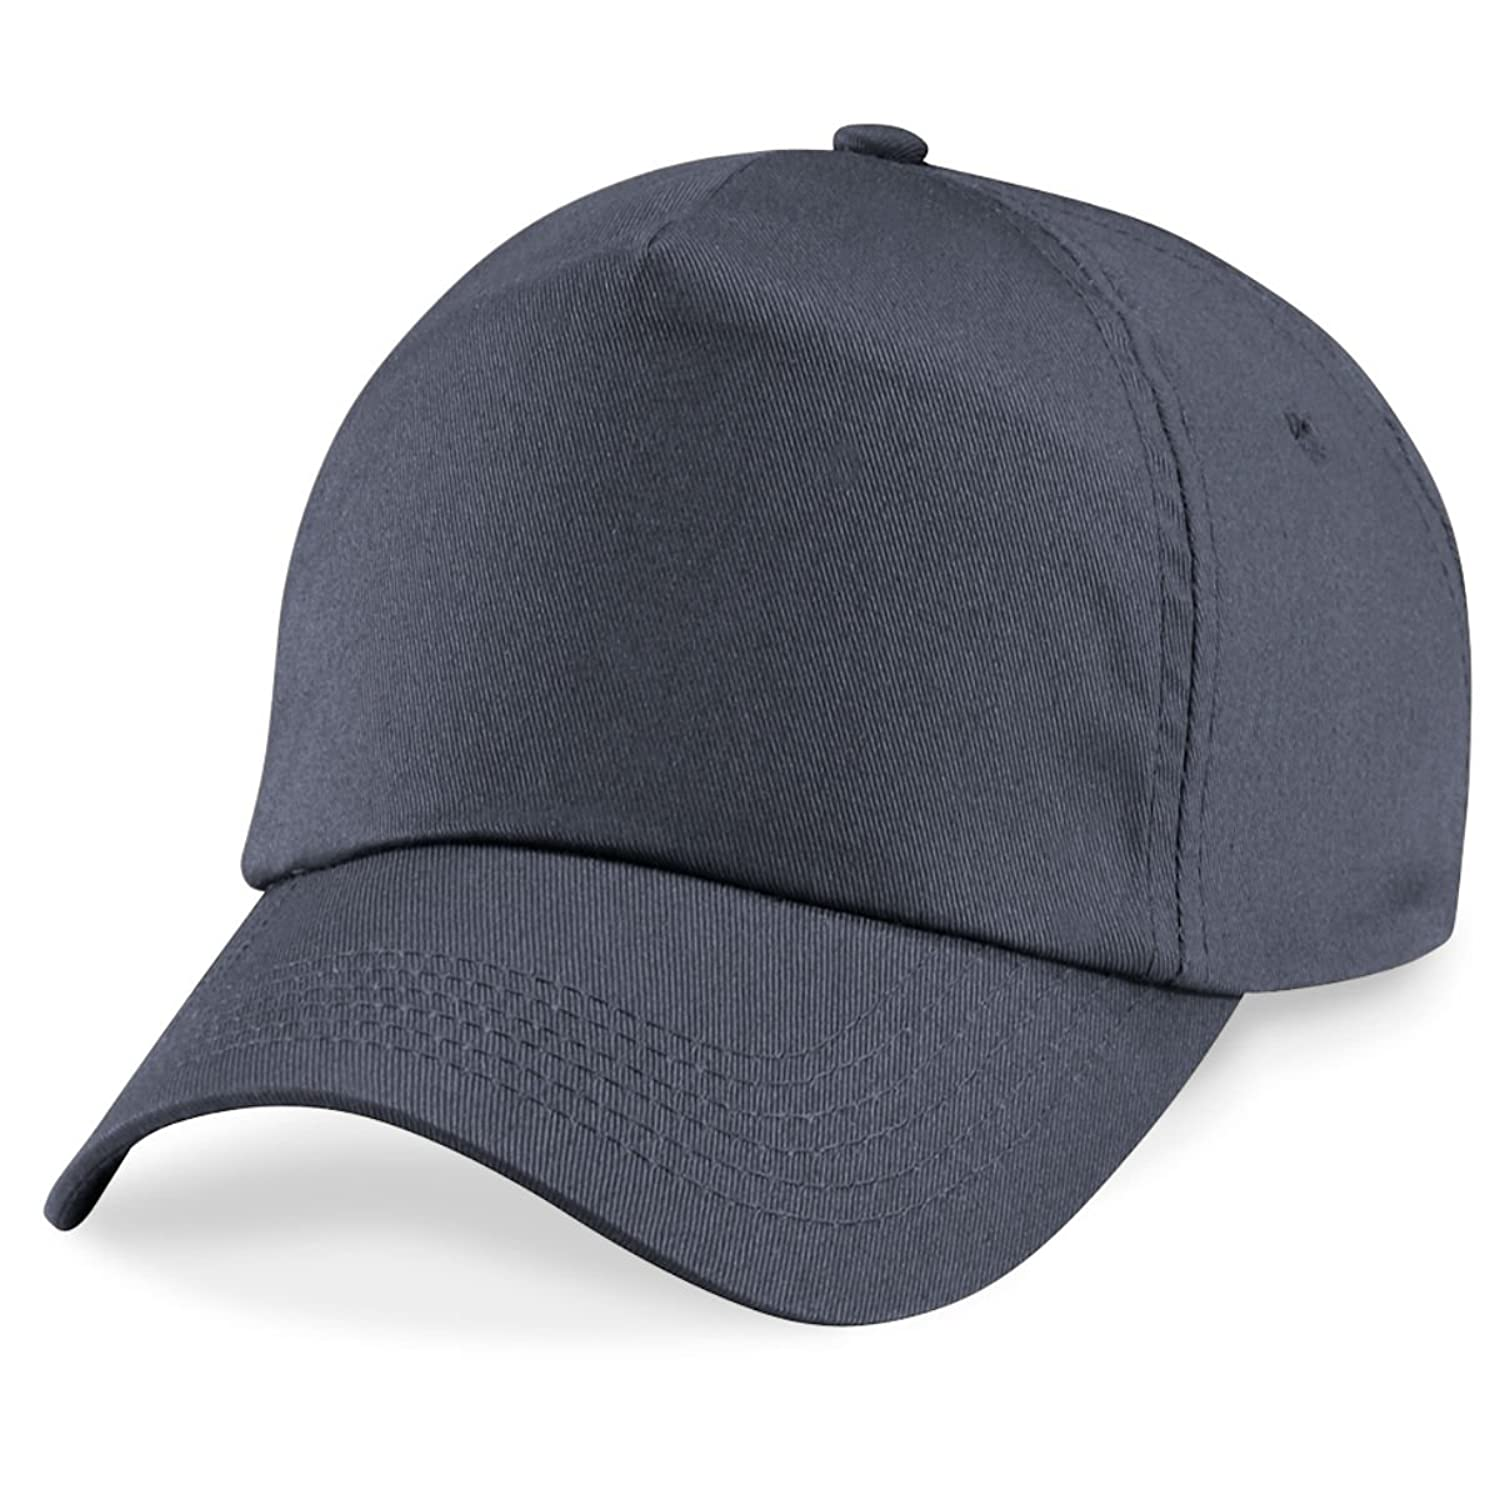 Beechfield 5 panel unlined cotton cap in Graphite Dunkelgrau